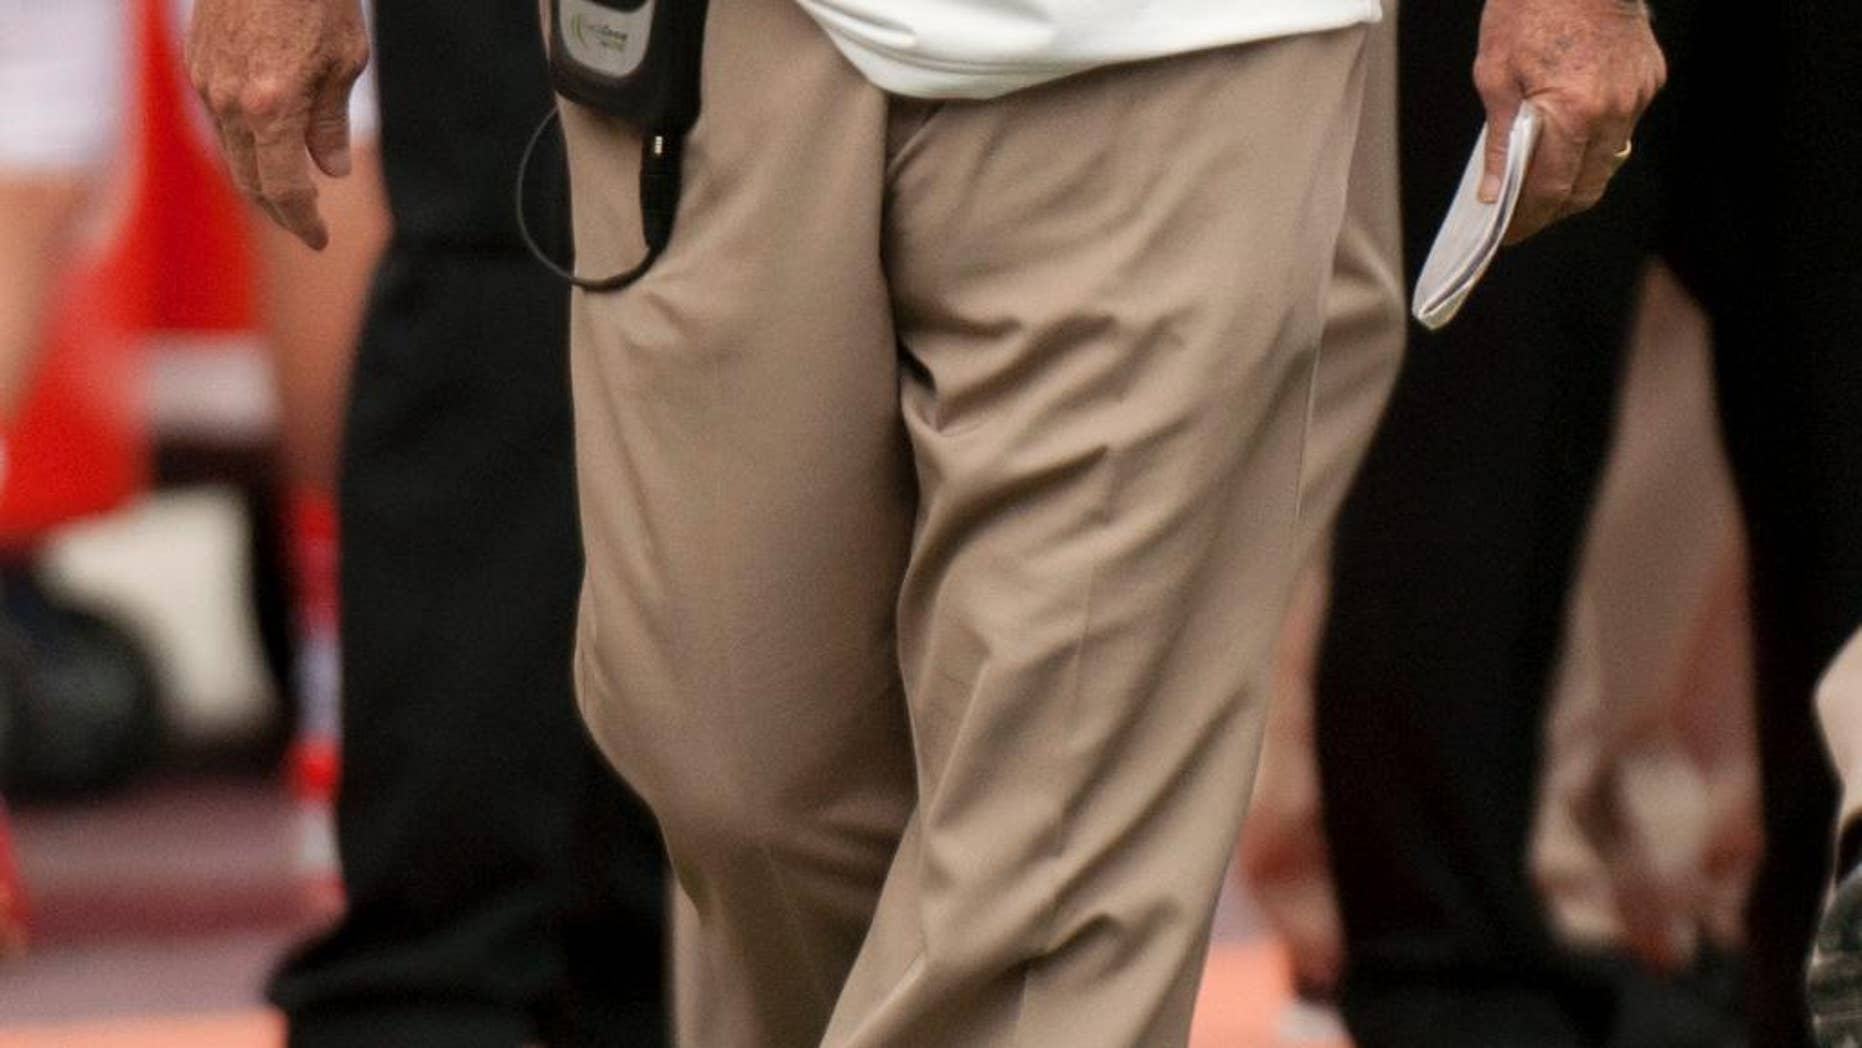 Virginia Tech head coach Frank Beamer stands on the sideline during an NCAA college football game against East Carolina, Saturday, Sept. 13, 2014, in Blacksburg, Va. (AP Photo/Don Petersen)